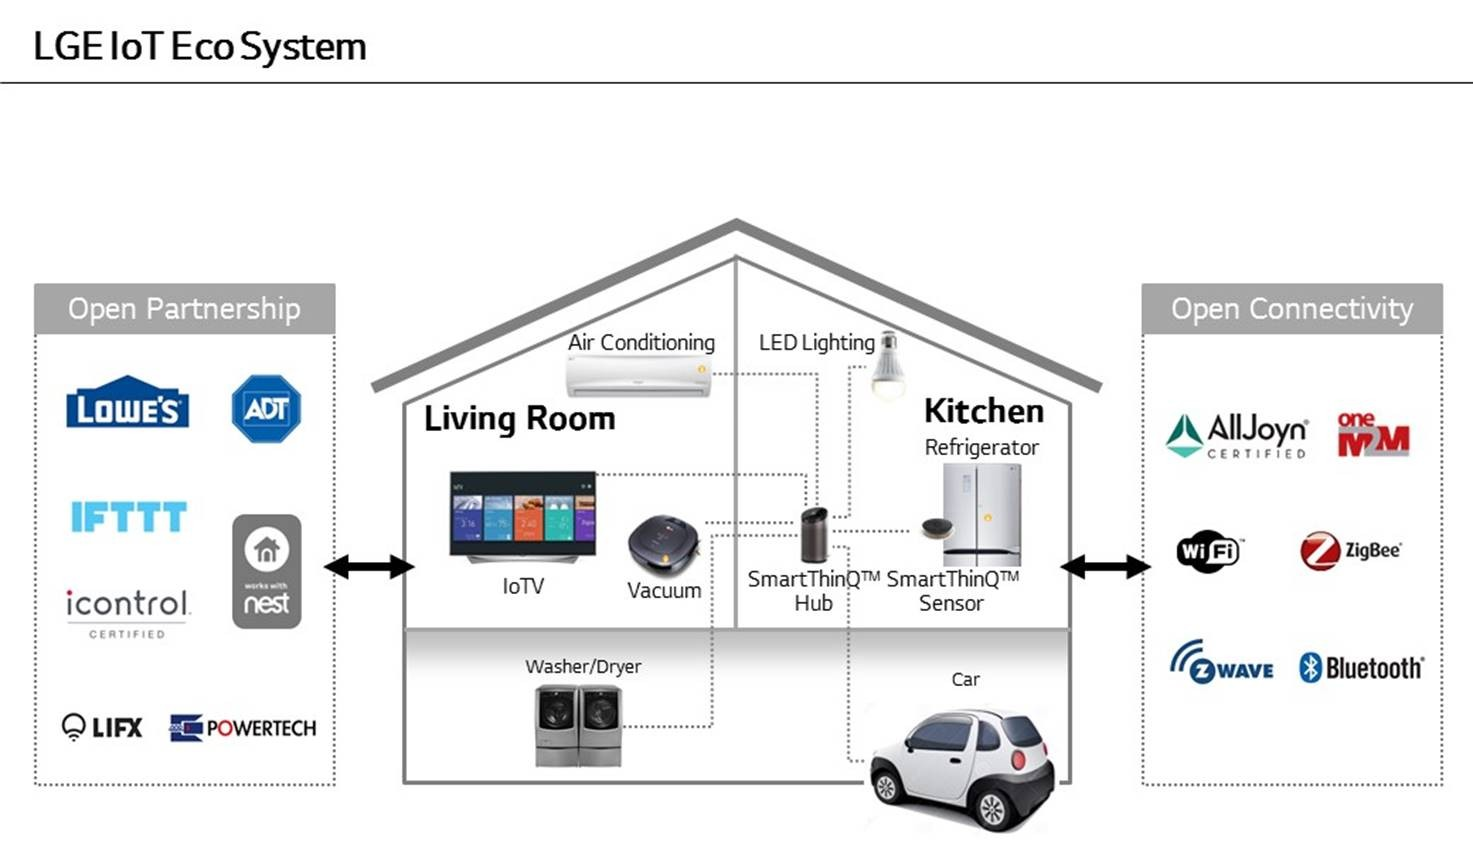 LG ADVANCES SMART HOME ECOSYSTEM WITH SMARTTHINQ™ HUB AT